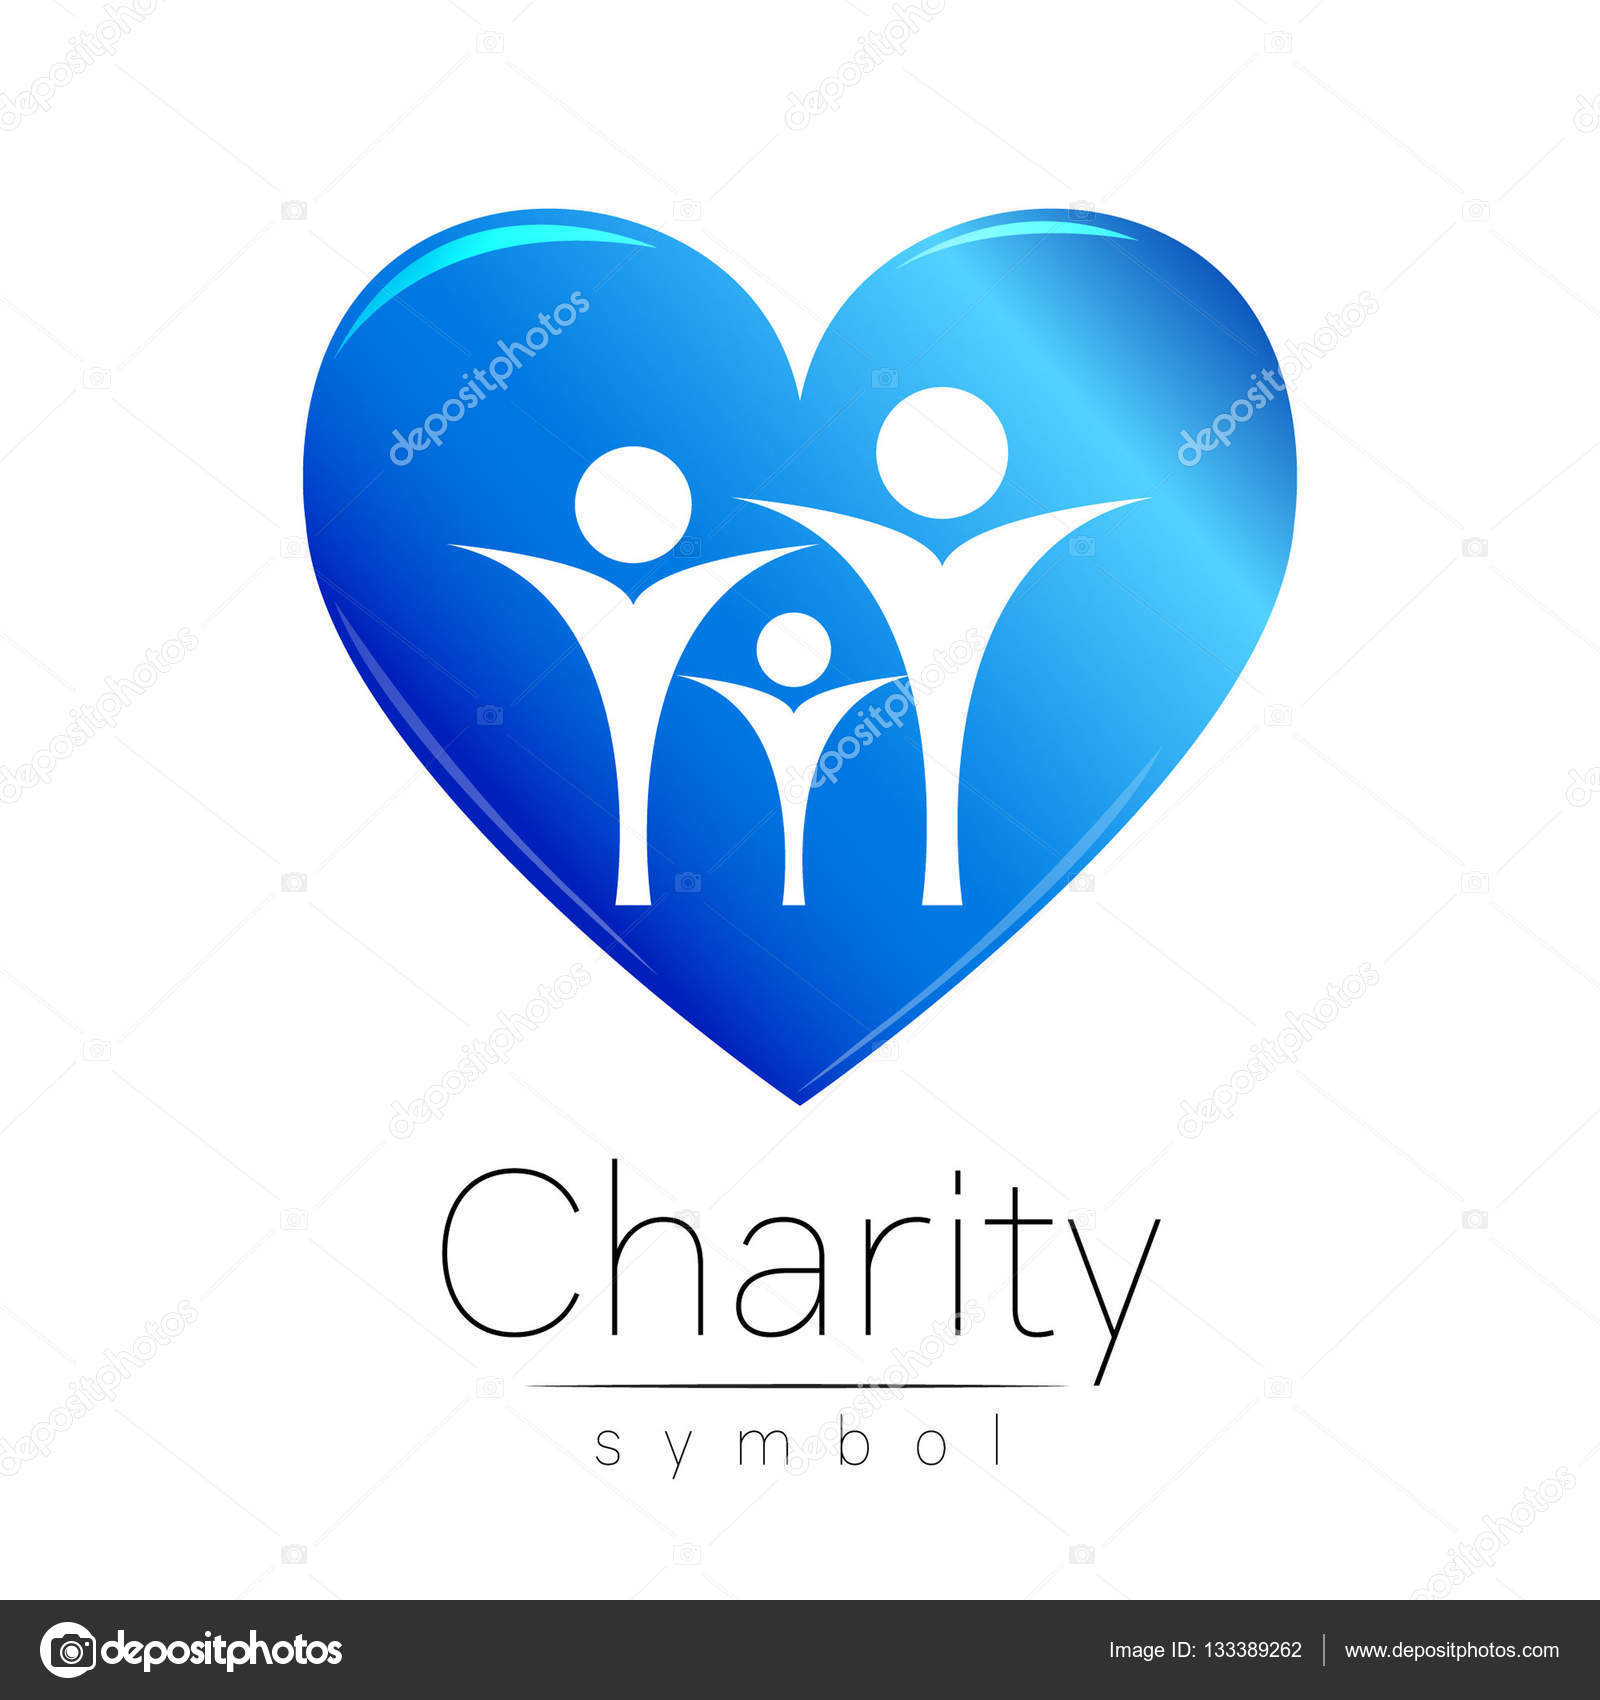 Vector illustration symbol of charitygn people heart isolated symbol of charitygn people heart isolated on white background biocorpaavc